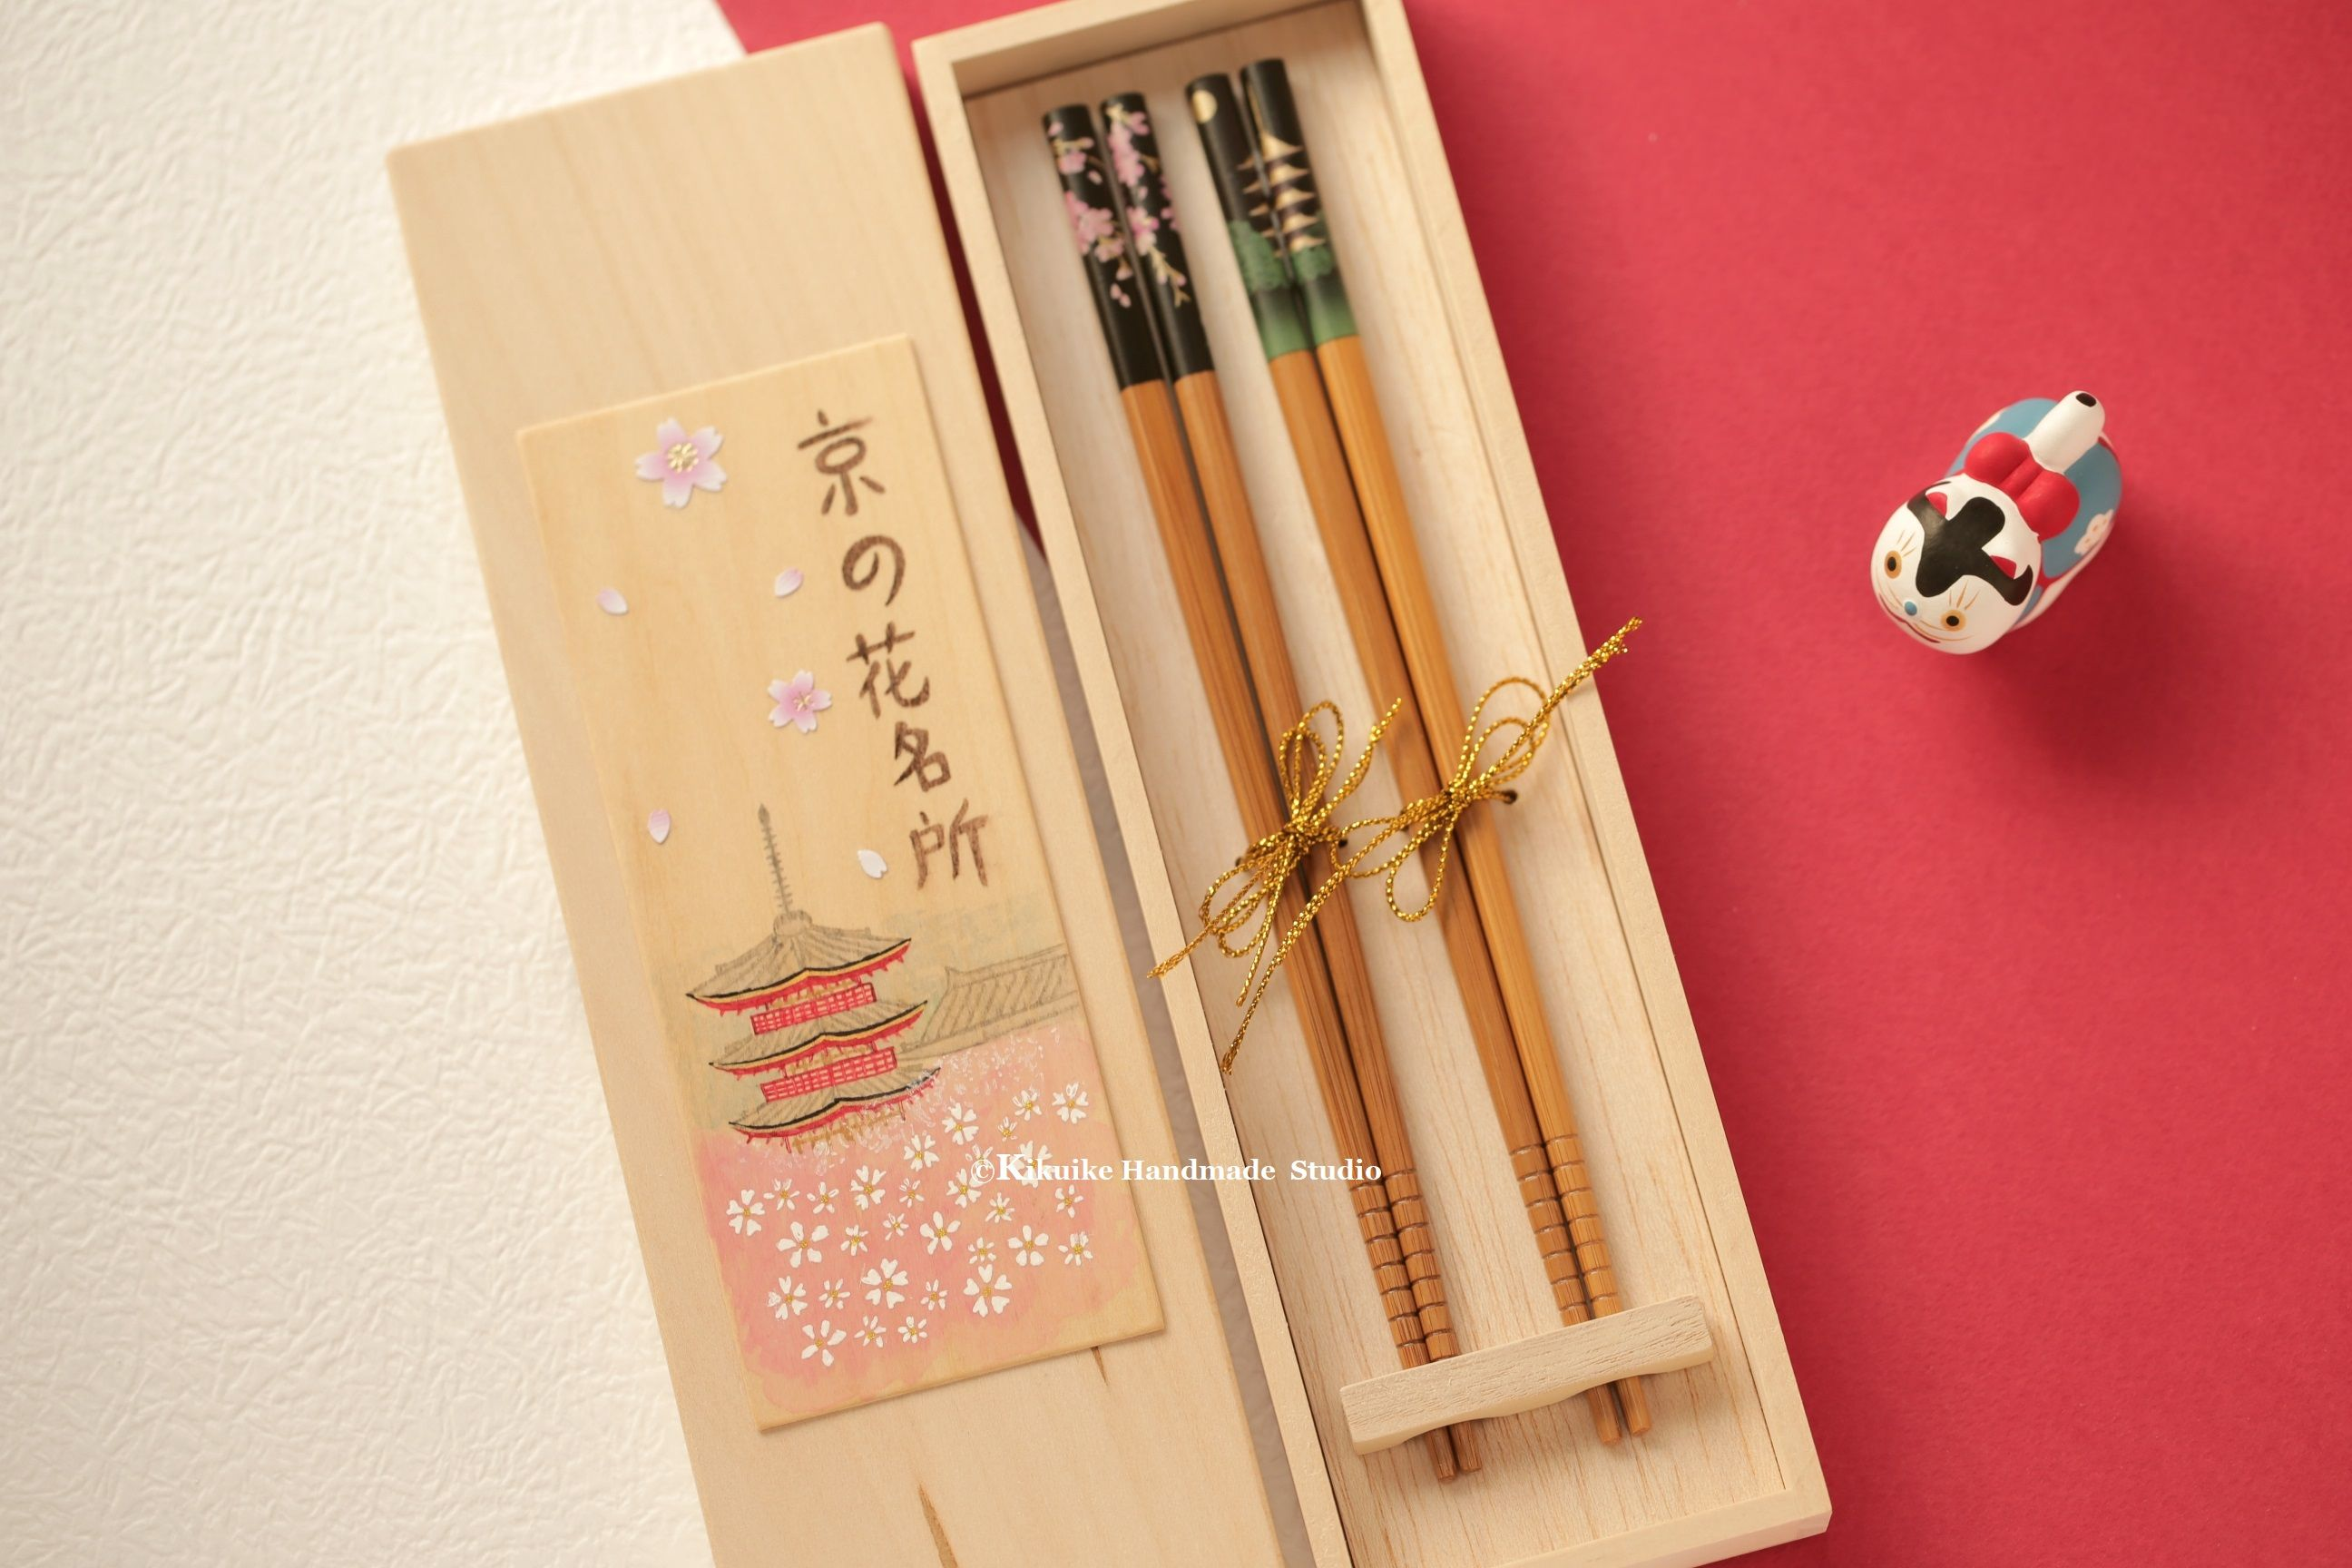 Handmade Japanese Chopstickshandmade Hand Painted Wooden Box